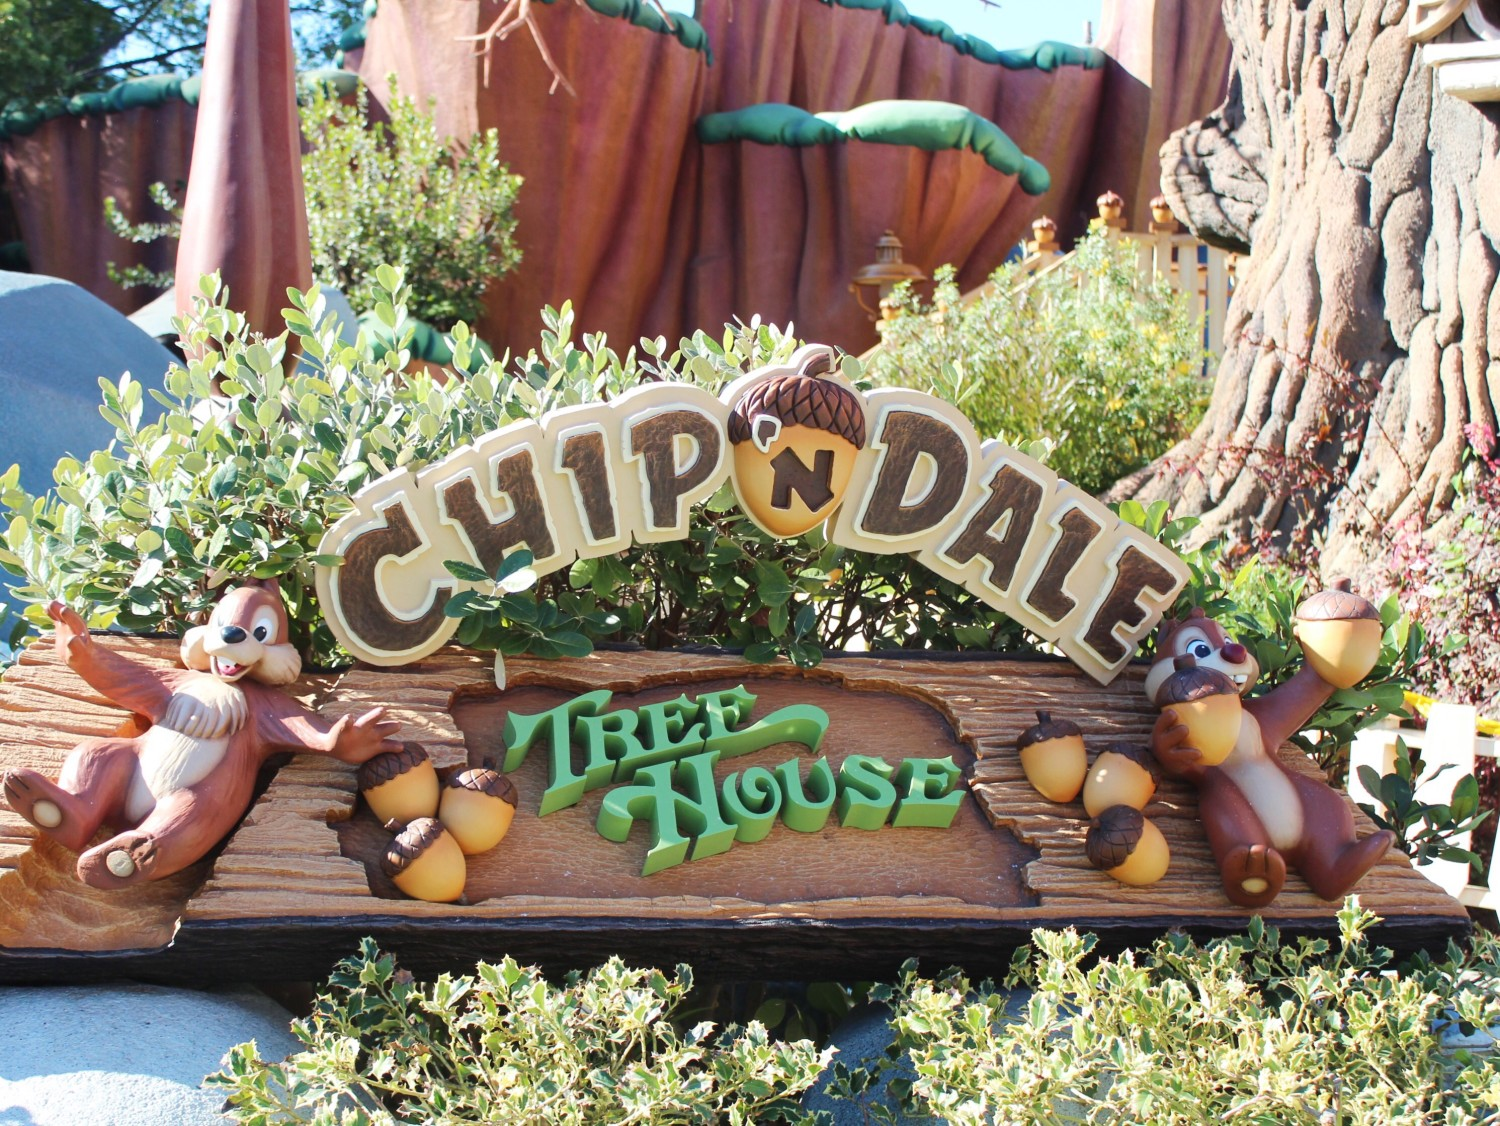 Disneyland Chip 'n Dale Treehouse